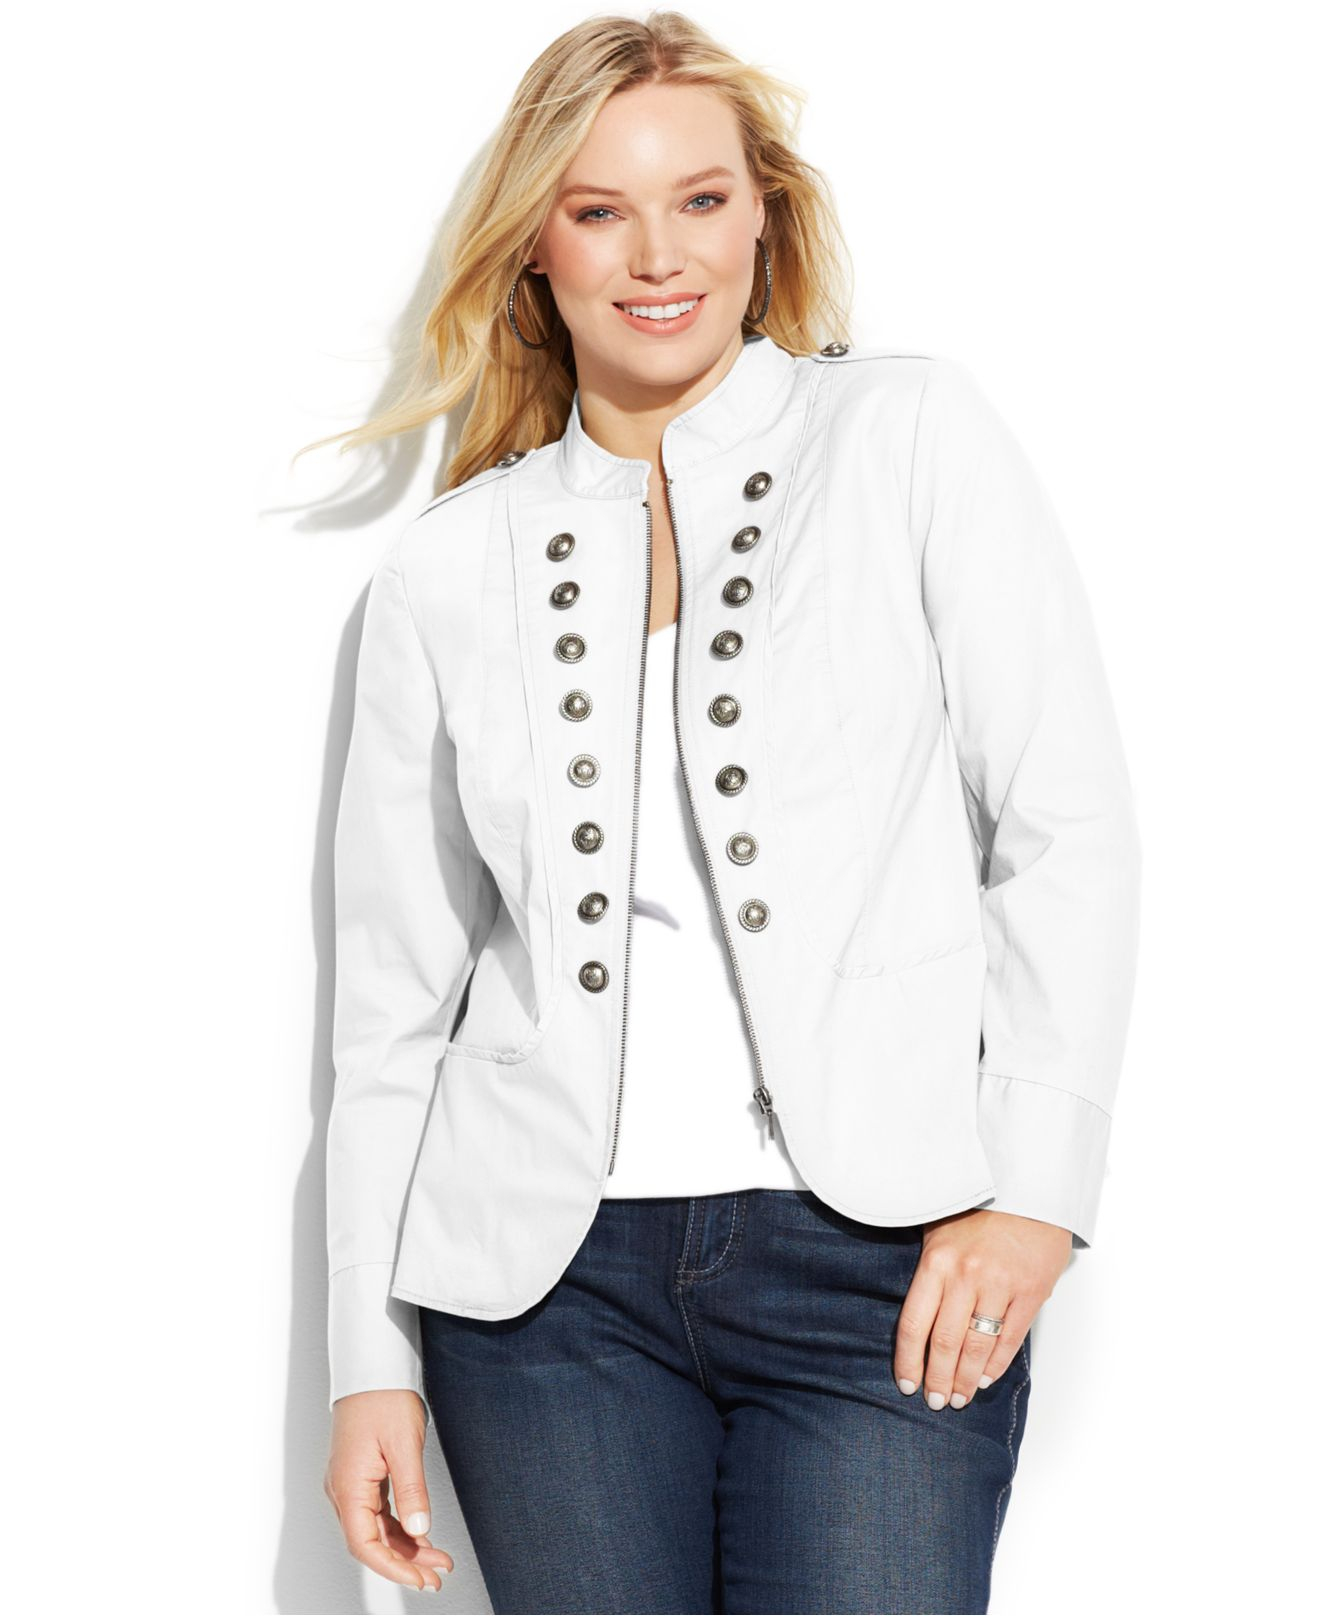 a6f9bbe661c Lyst - INC International Concepts Plus Size Zip-Front Military ...